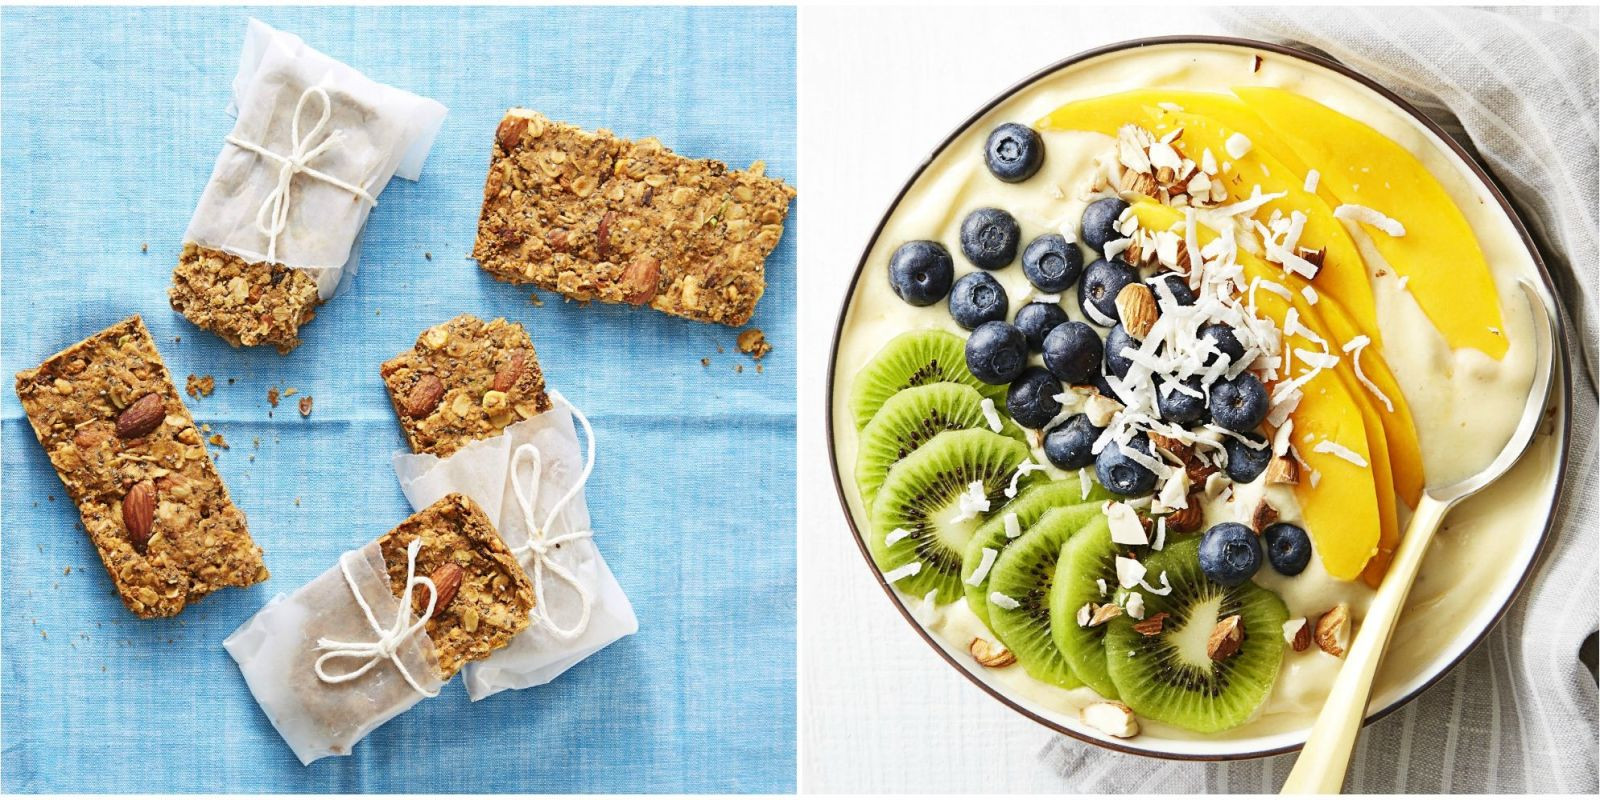 Healthy Breakfast Snacks  48 Easy Healthy Breakfast Ideas Recipes for Quick and